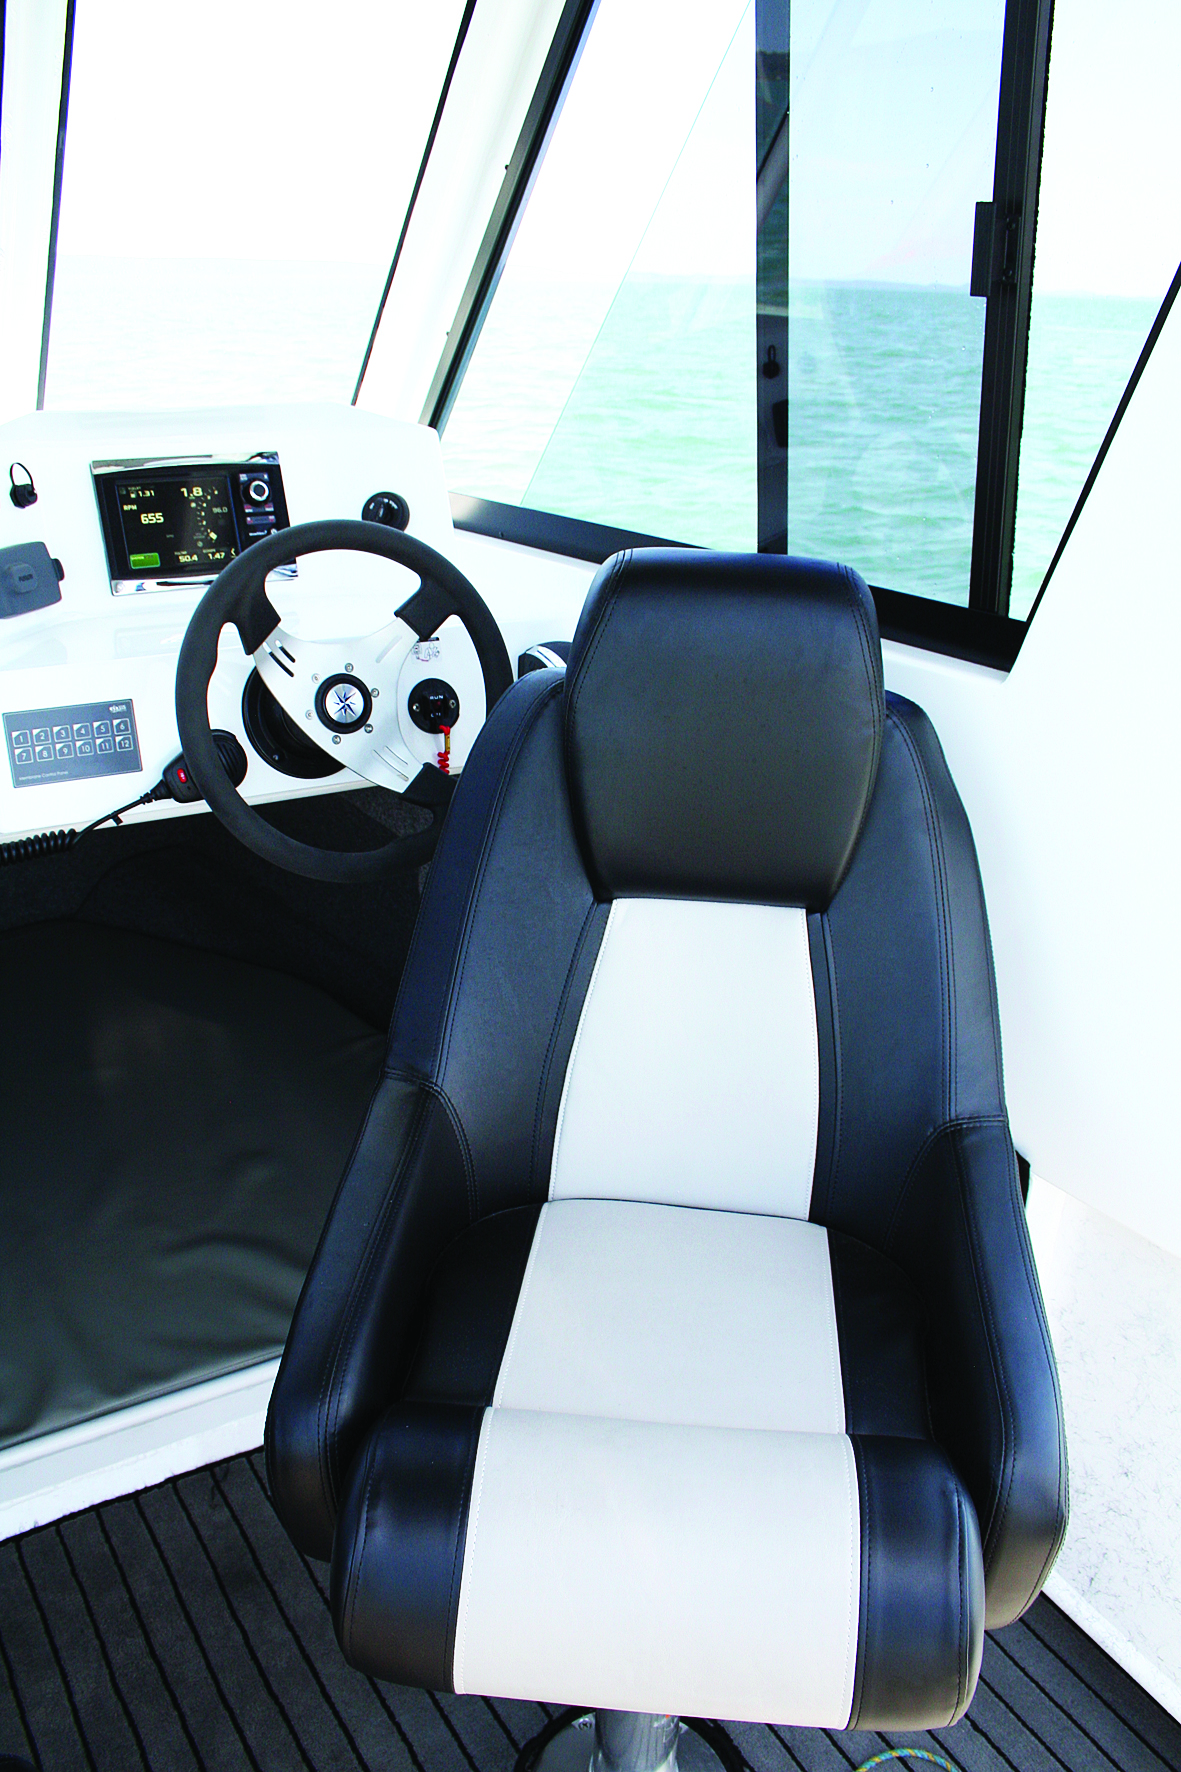 A hard top gives you such a great sense of security when at the helm and punching through a sloppy sea.